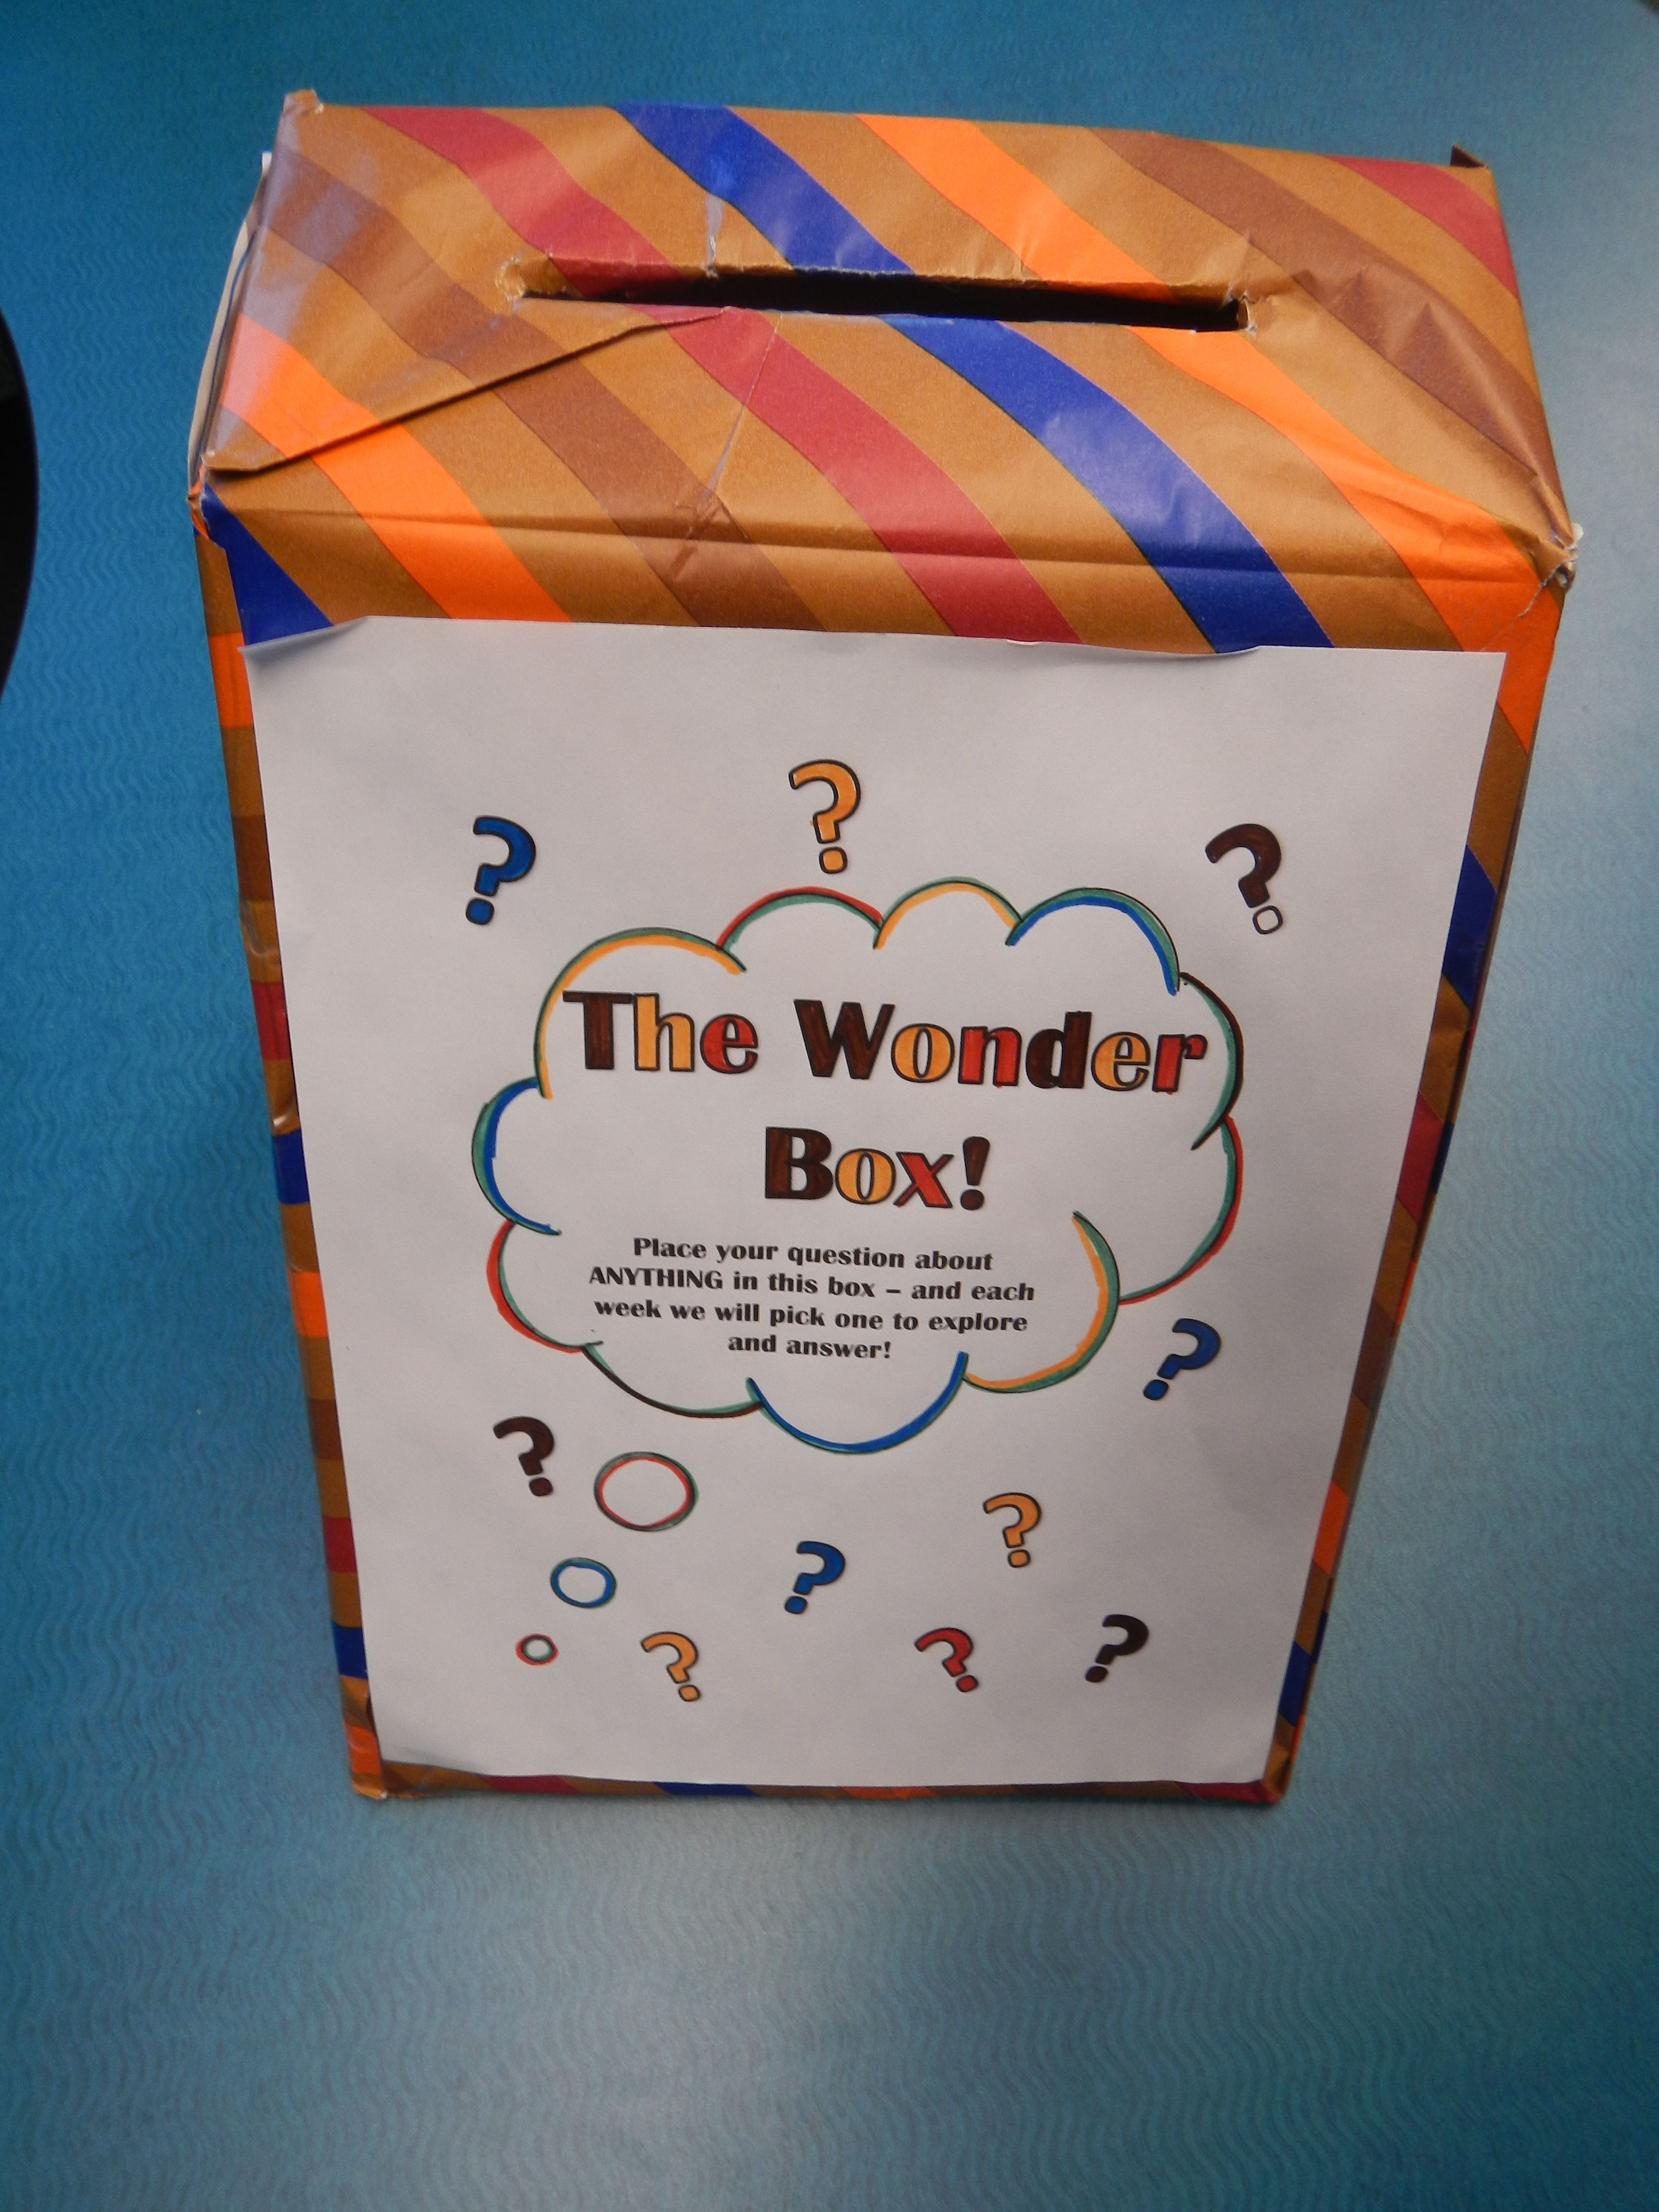 The Wonder Box Is A Great Way To Explore And Encourage